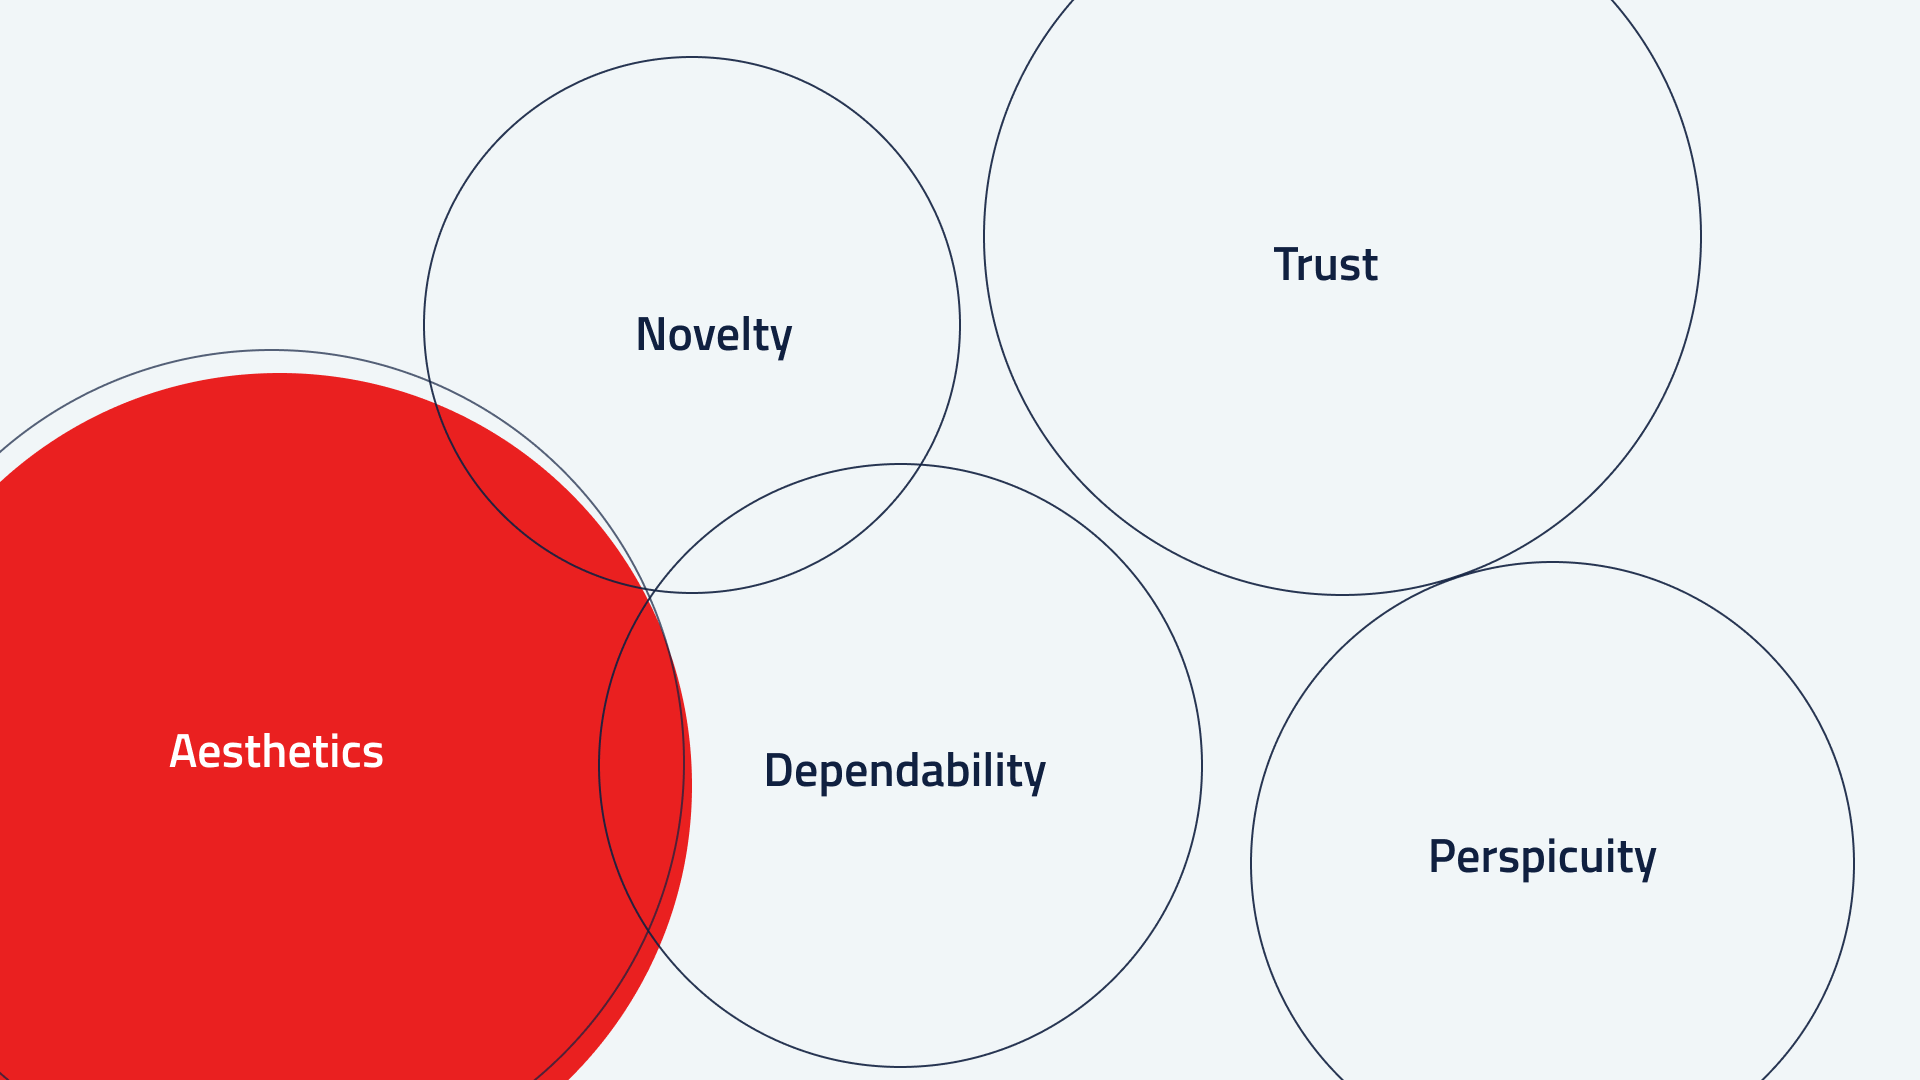 Infographic with the 5 measured values: Aesthetics, Novelty, Trust, Dependability and Perspicuity.